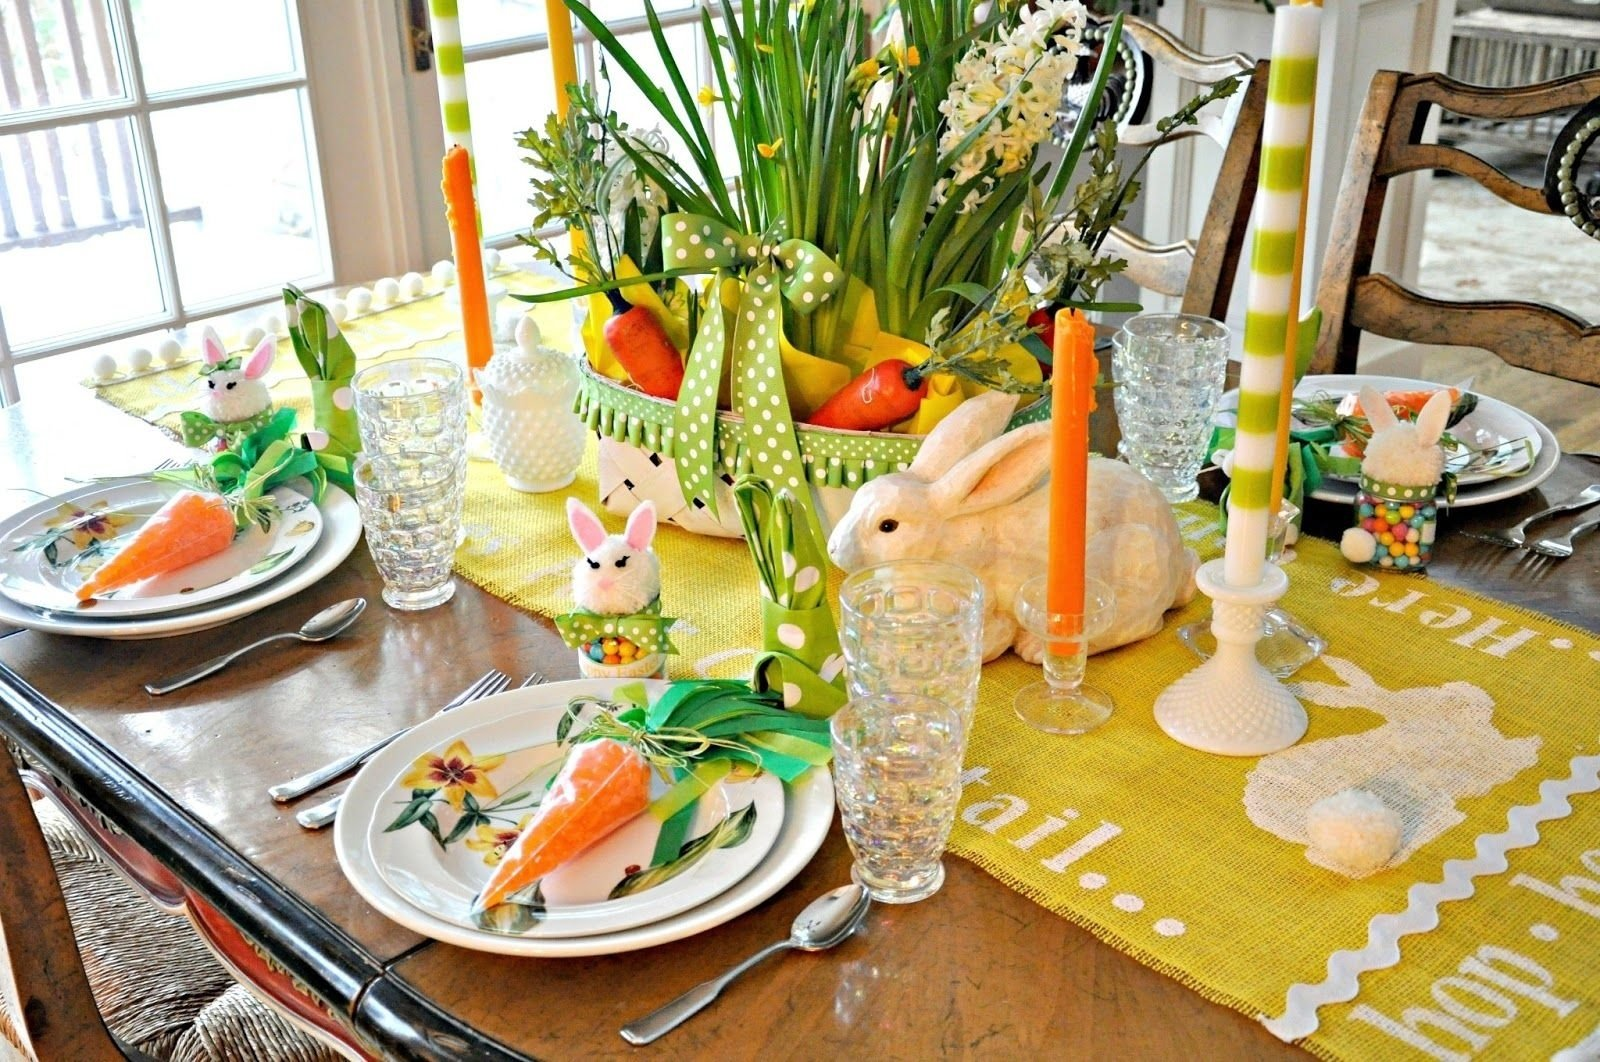 10 Best Easter Decorating Ideas Table Setting 45 amazing easter table decoration ideas easter table easter and 2021